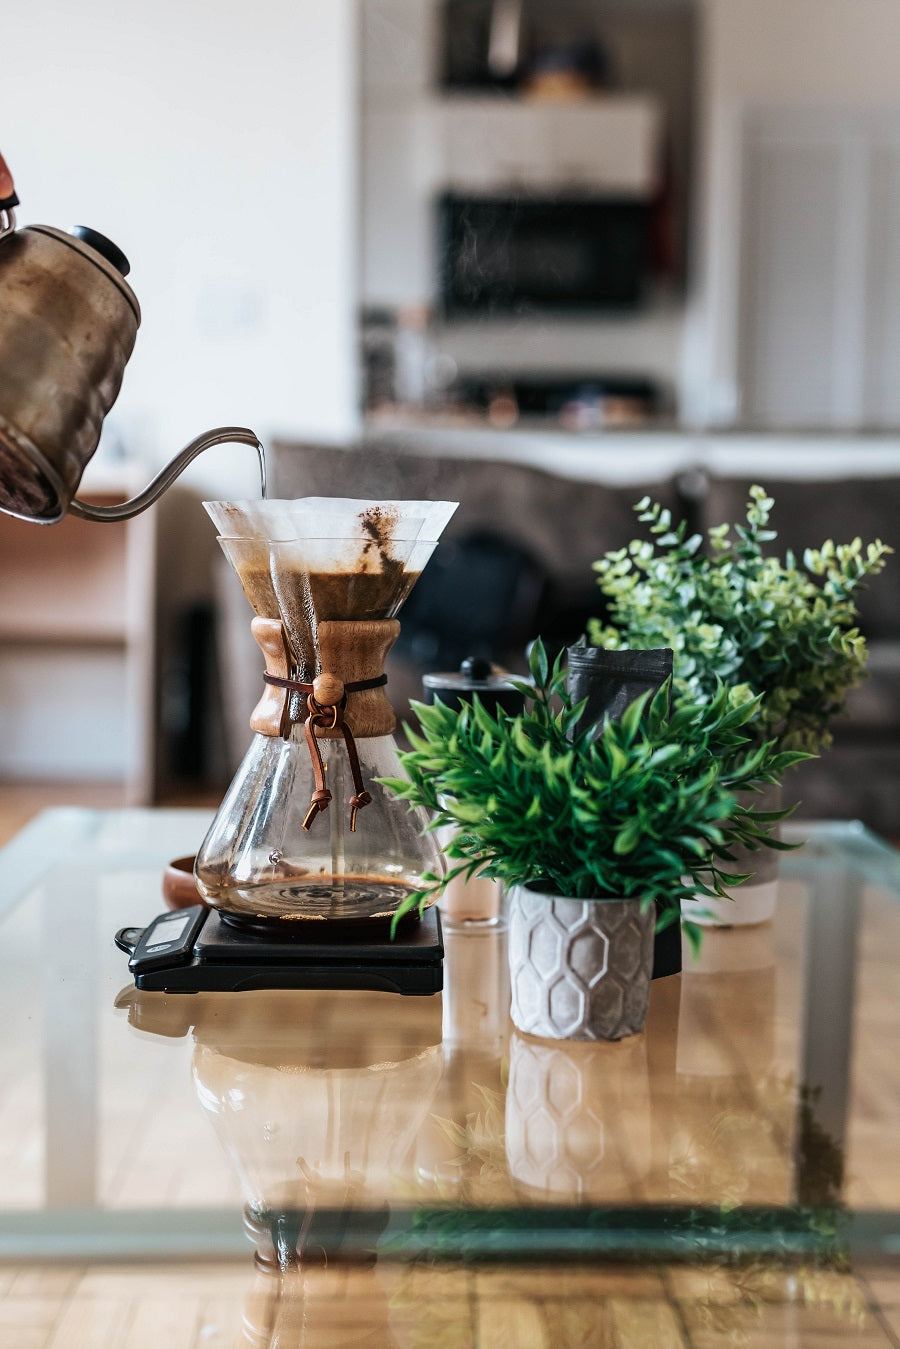 A Hand pours steaming water from a kettle into the top of a coffee loaded Chemex Pour Over brewer that sits on a modern glass coffee table